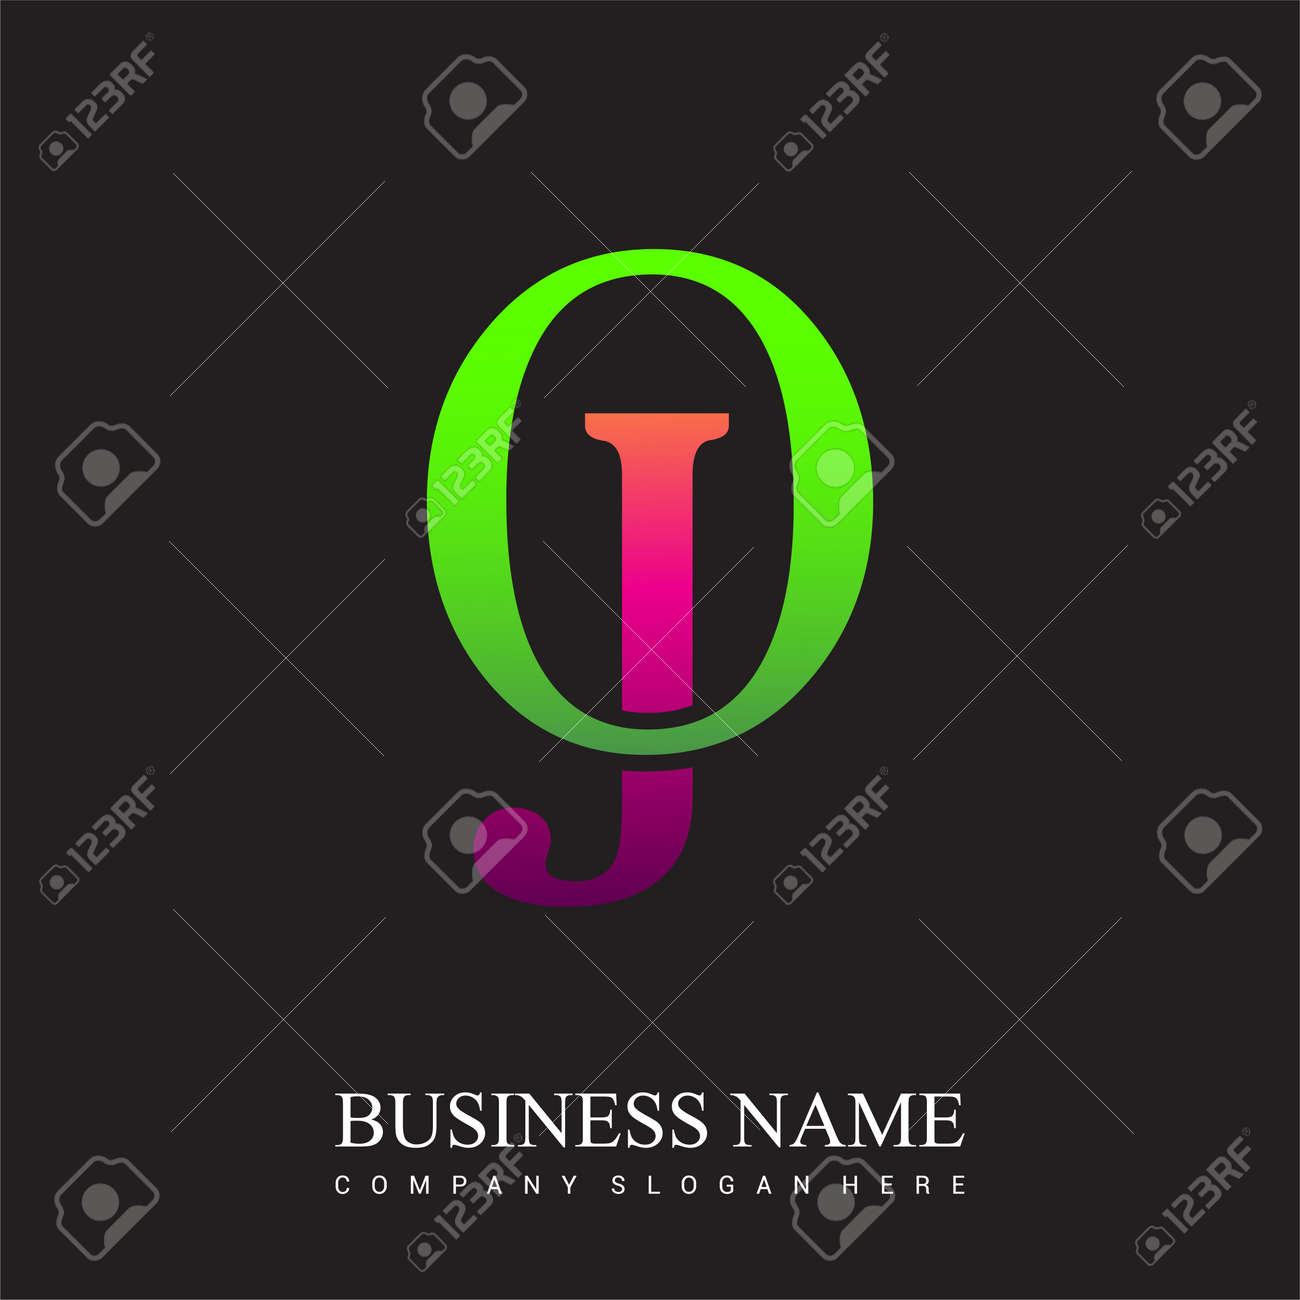 initial letter logo OJ colored pink and green, Vector logo design template elements for your business or company identity. - 157803175